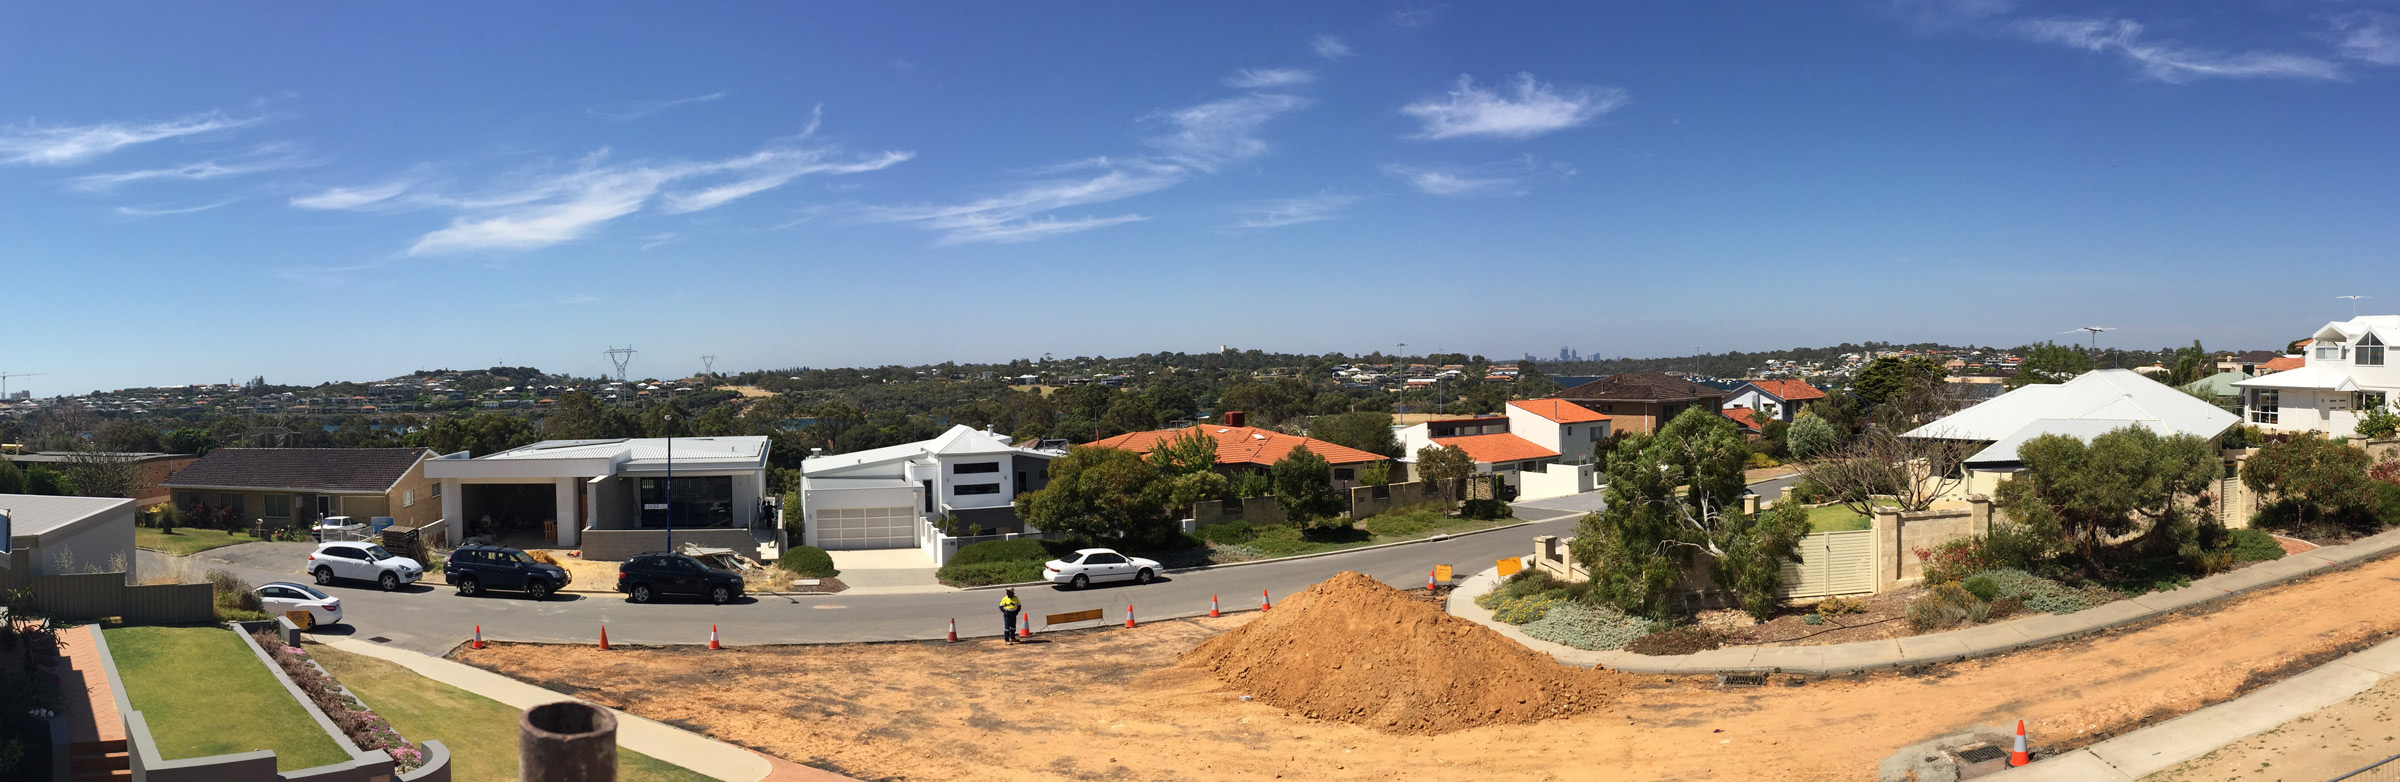 180 DEGREE VIEW OVER THE SWAN RIVER TO THE CITY OF PERTH